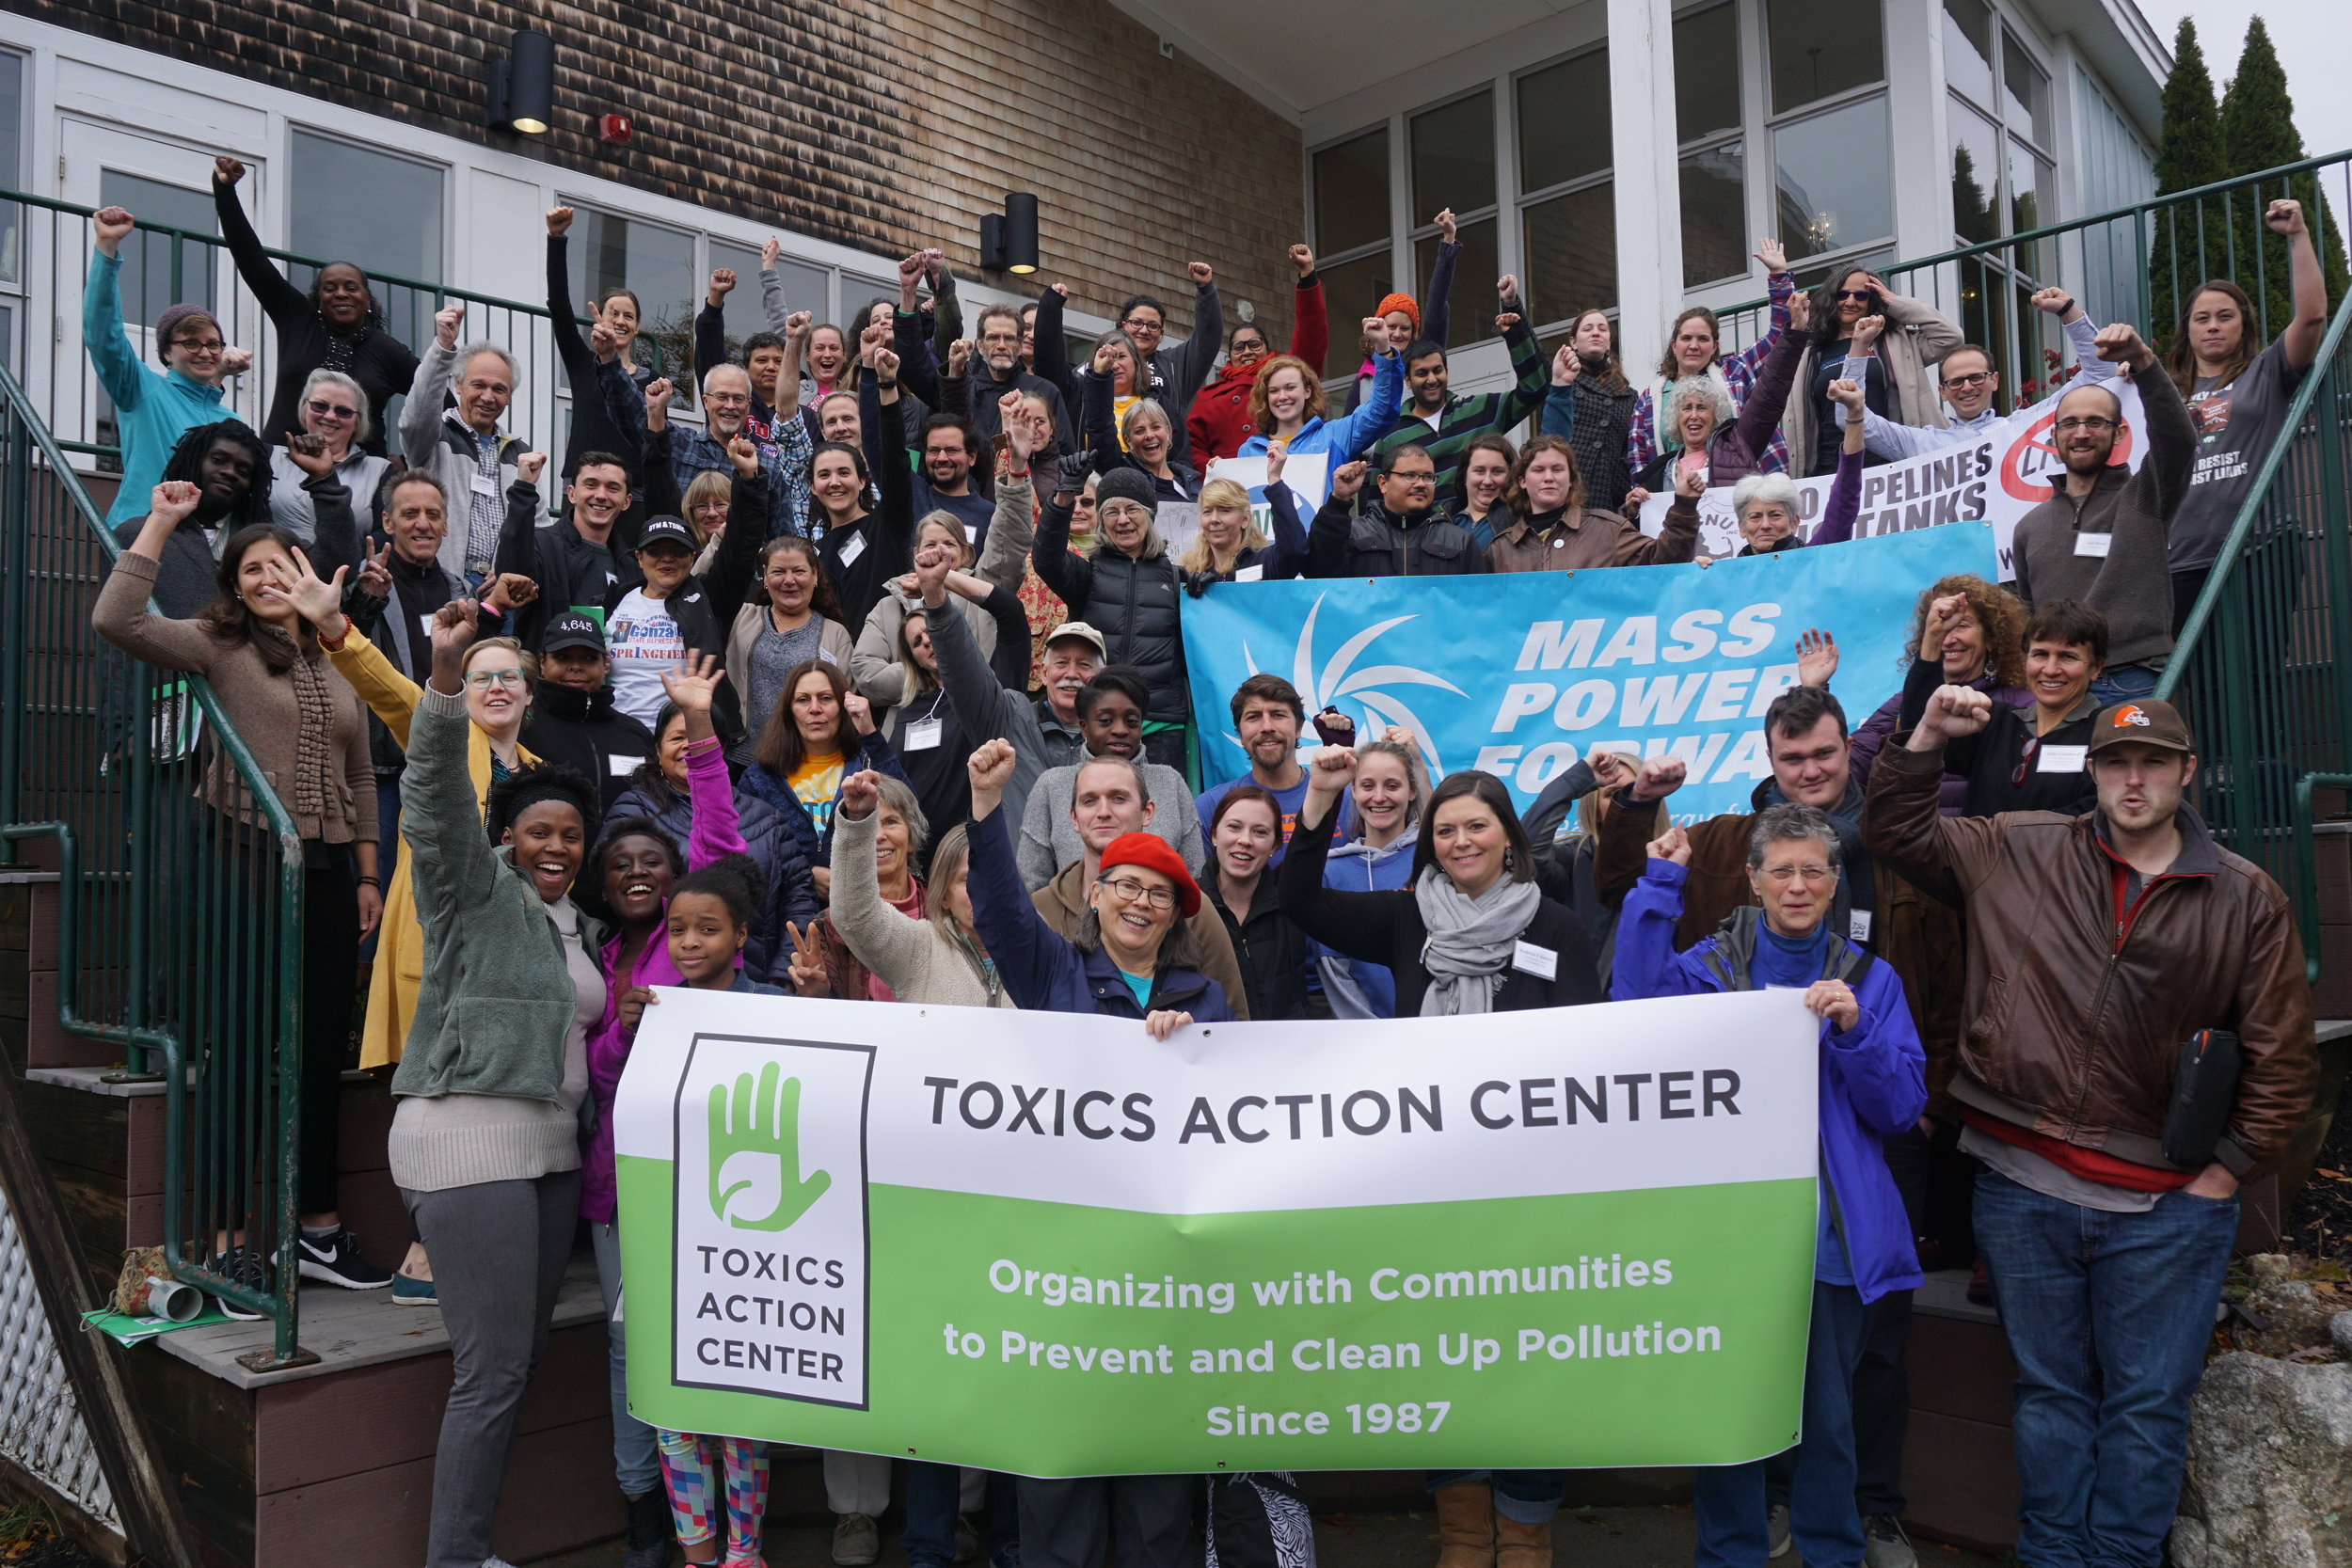 (Photo credit: Toxics Action Center)